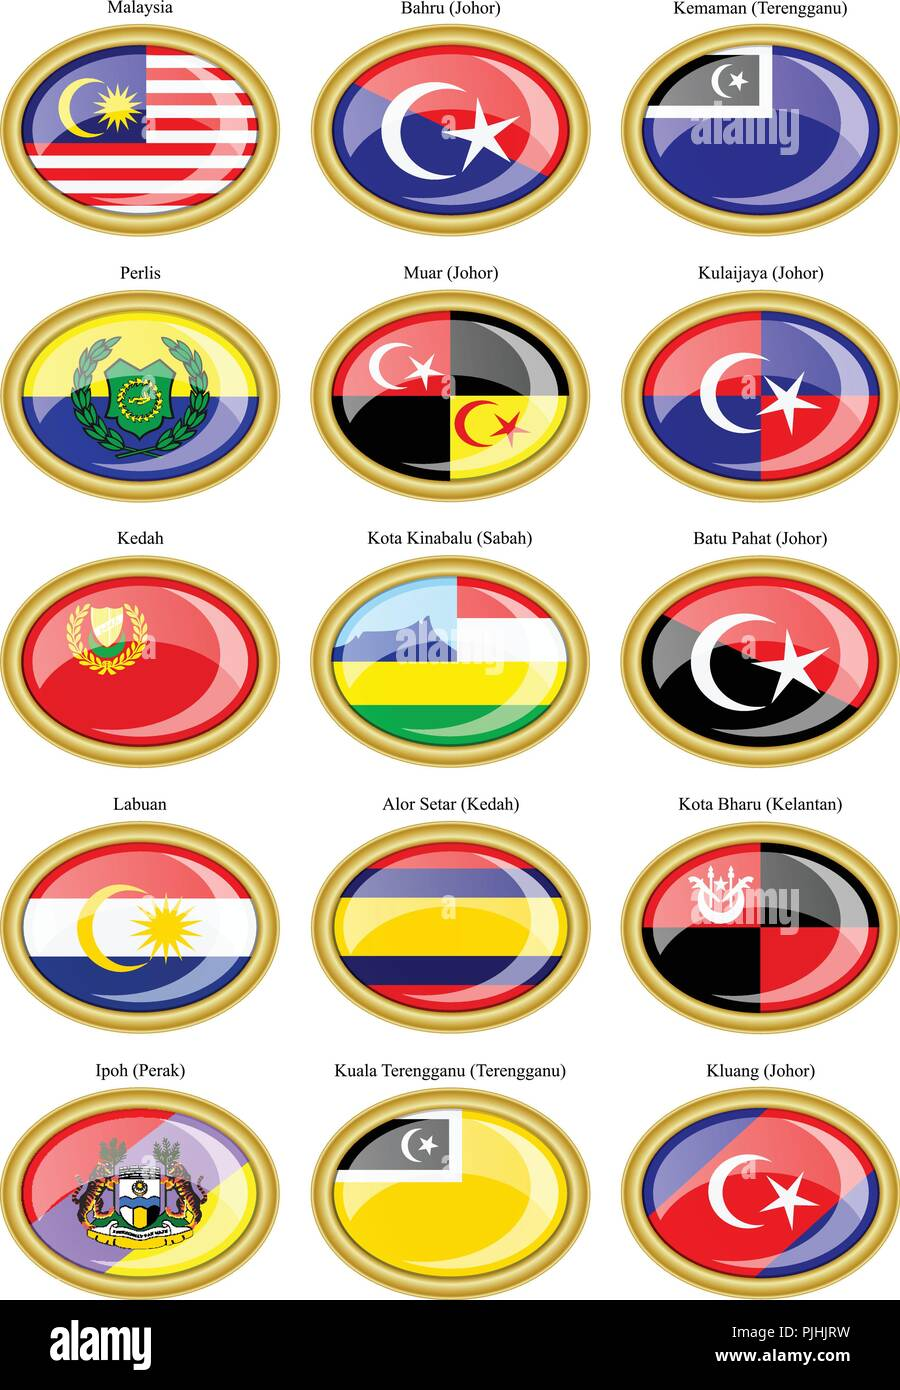 Set of icons. Flags of the Malaysian states and cities. - Stock Vector